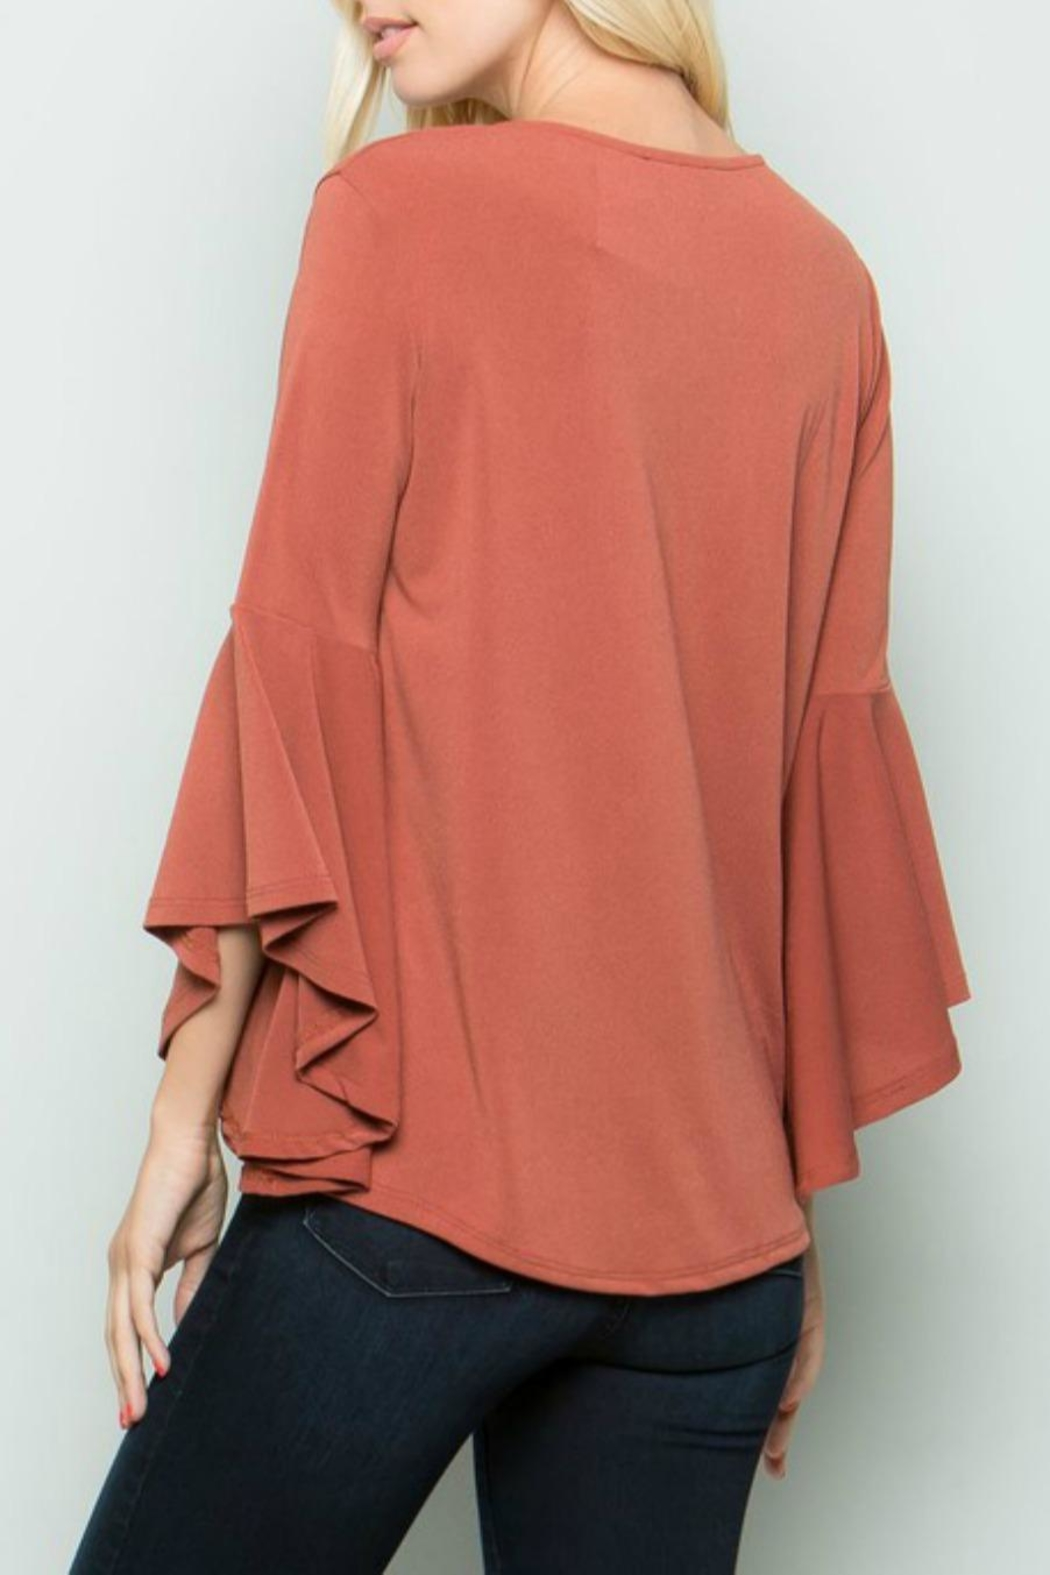 eesome Cross-Front Bell-Sleeve Top - Side Cropped Image